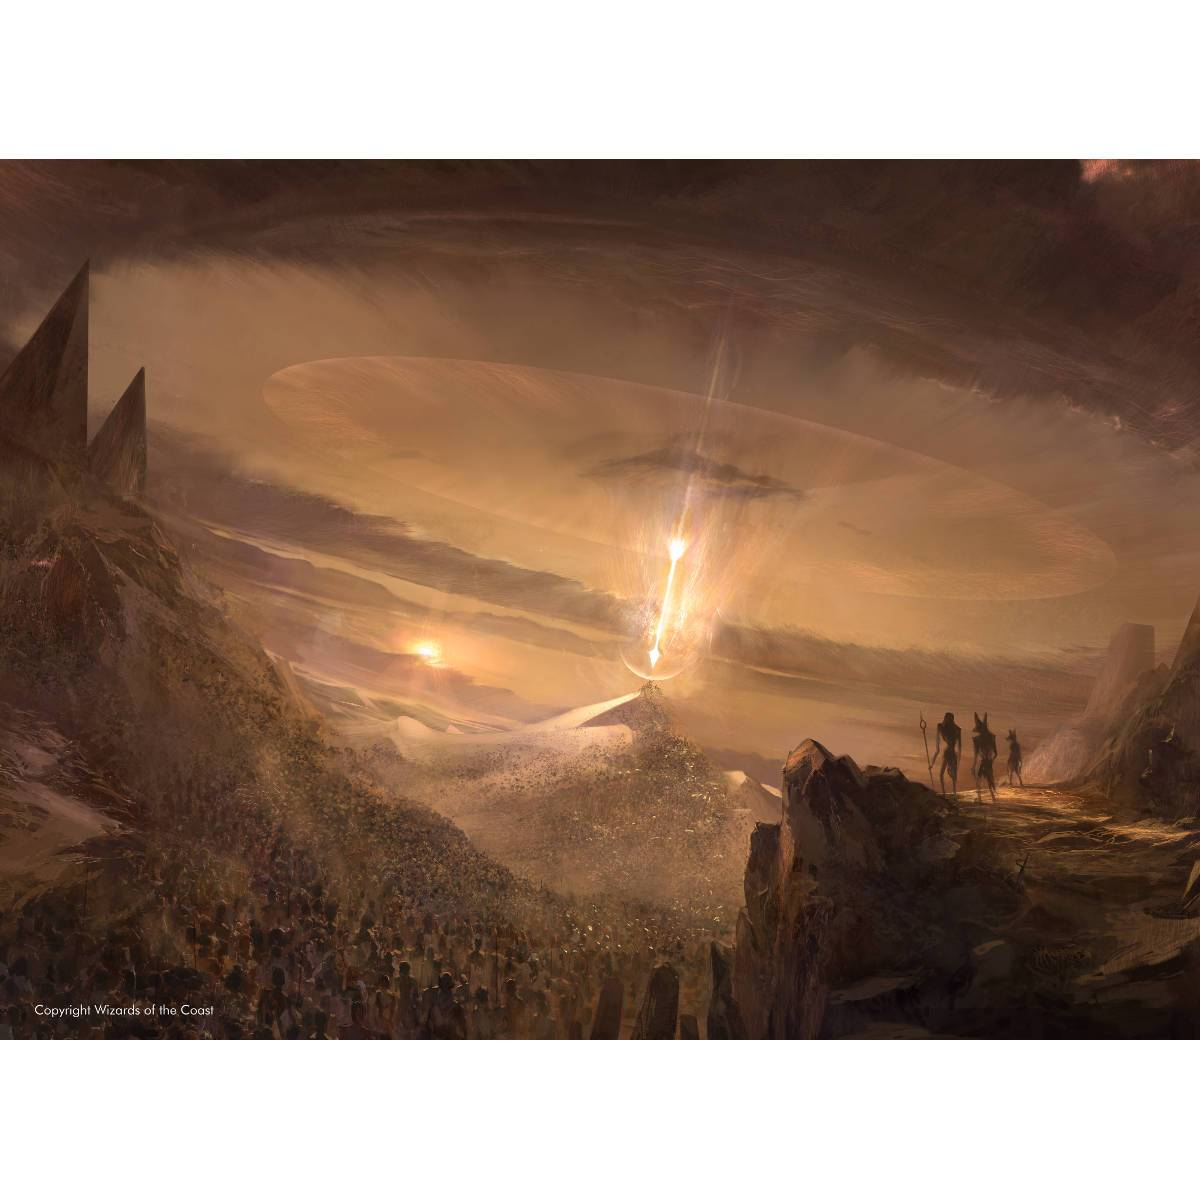 Wrath of God Print - Print - Original Magic Art - Accessories for Magic the Gathering and other card games